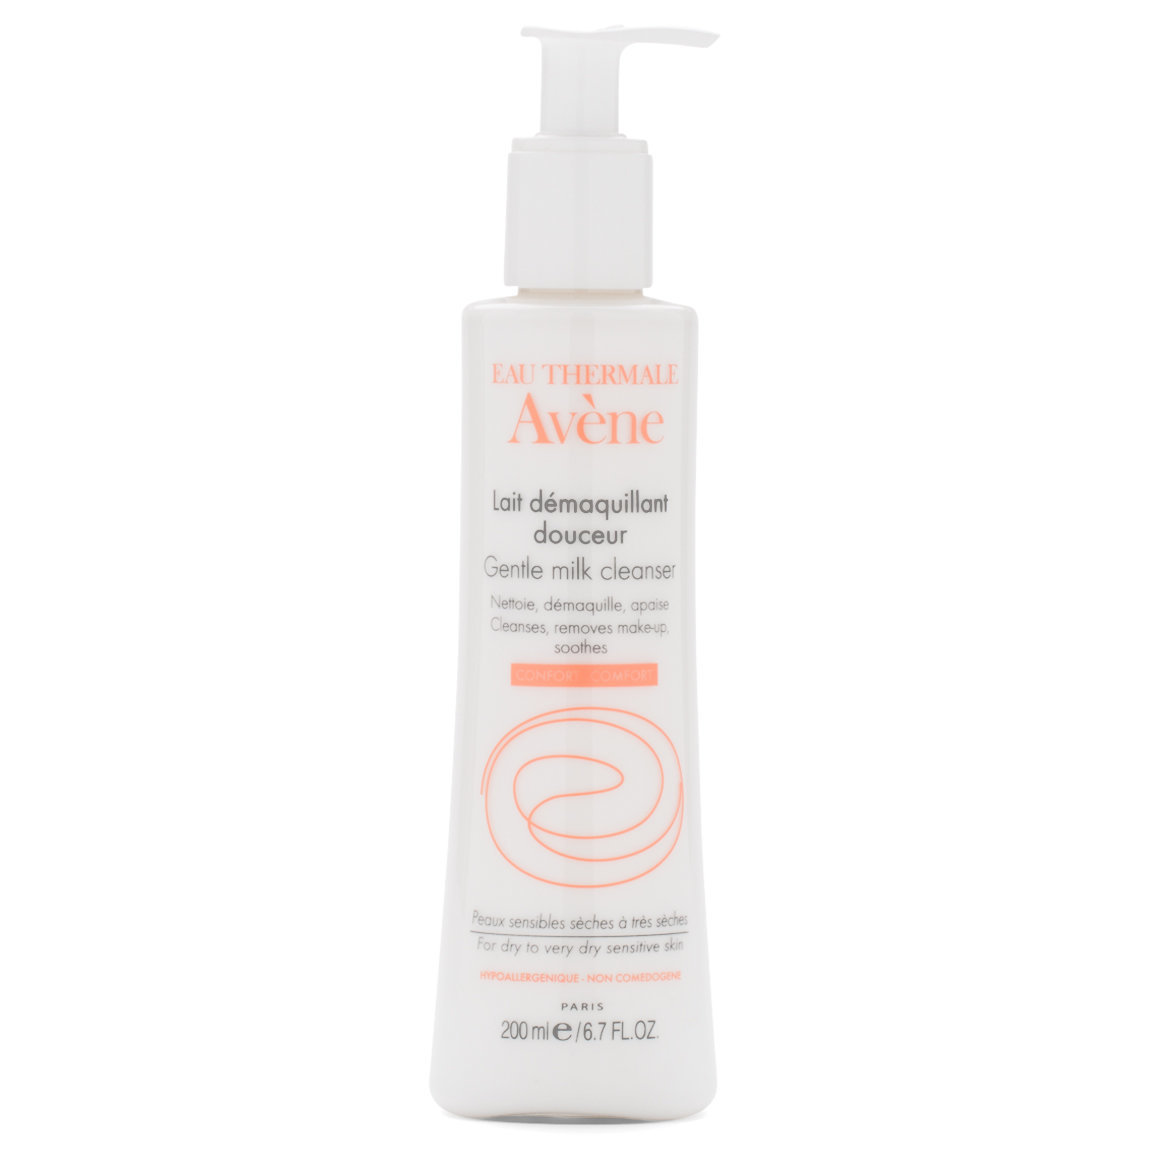 Eau Thermale Avène Gentle Milk Cleanser 200 ml product swatch.